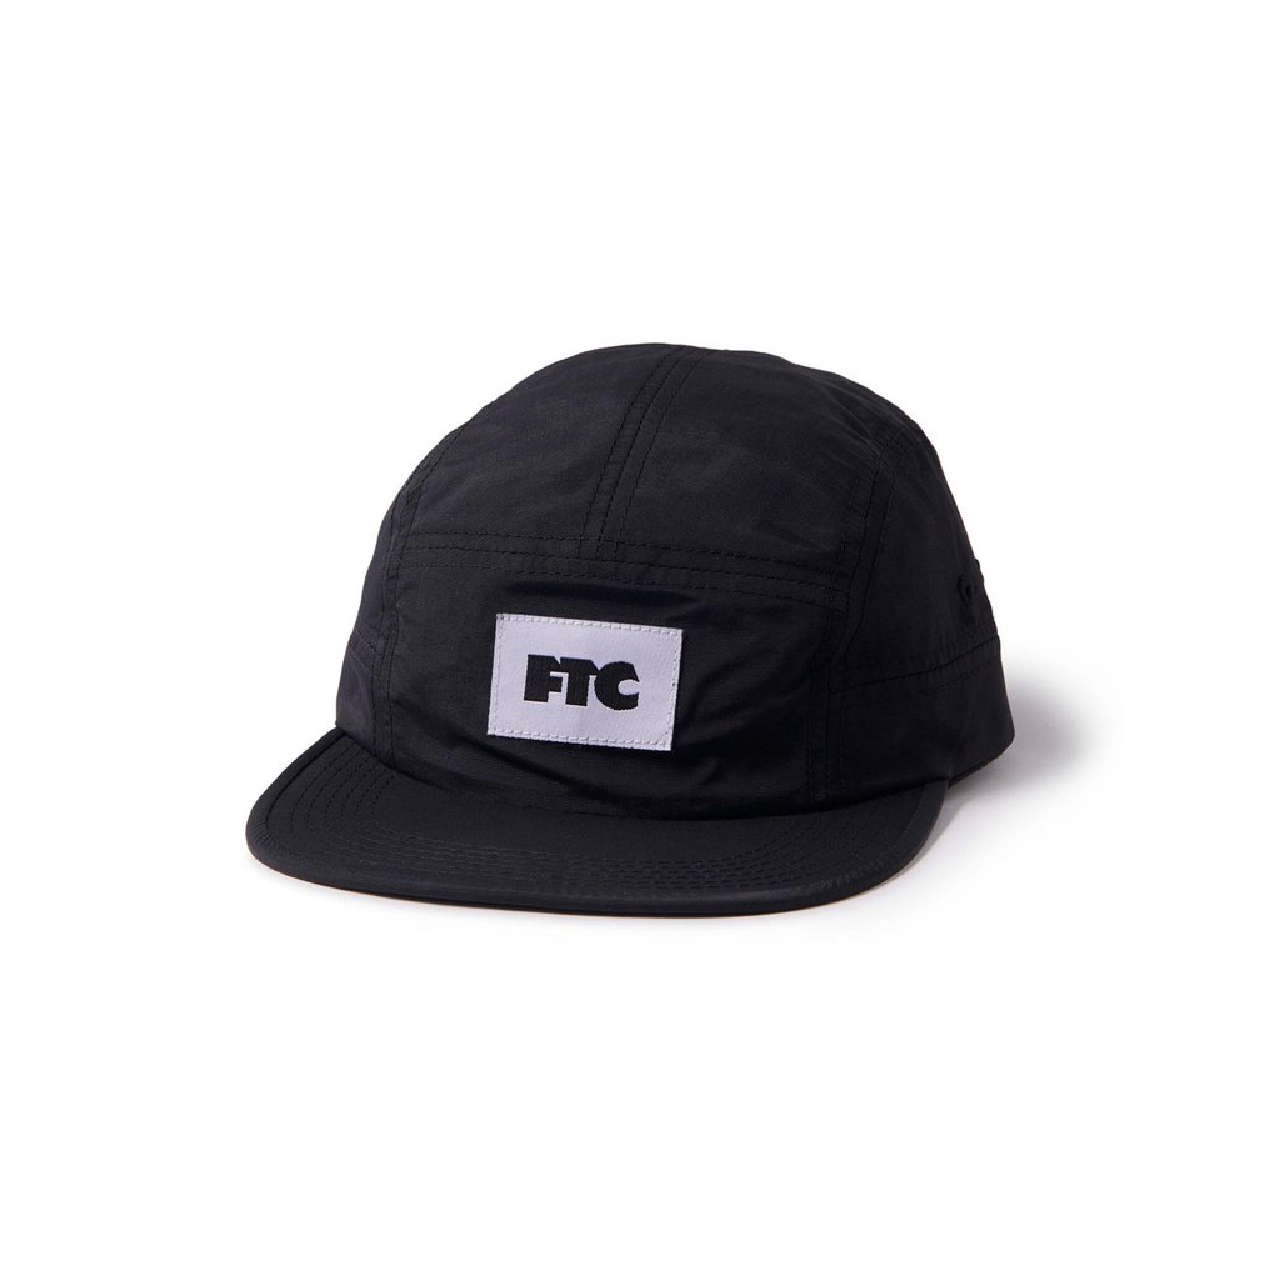 FTC - OG Nylon Camper Hat Black